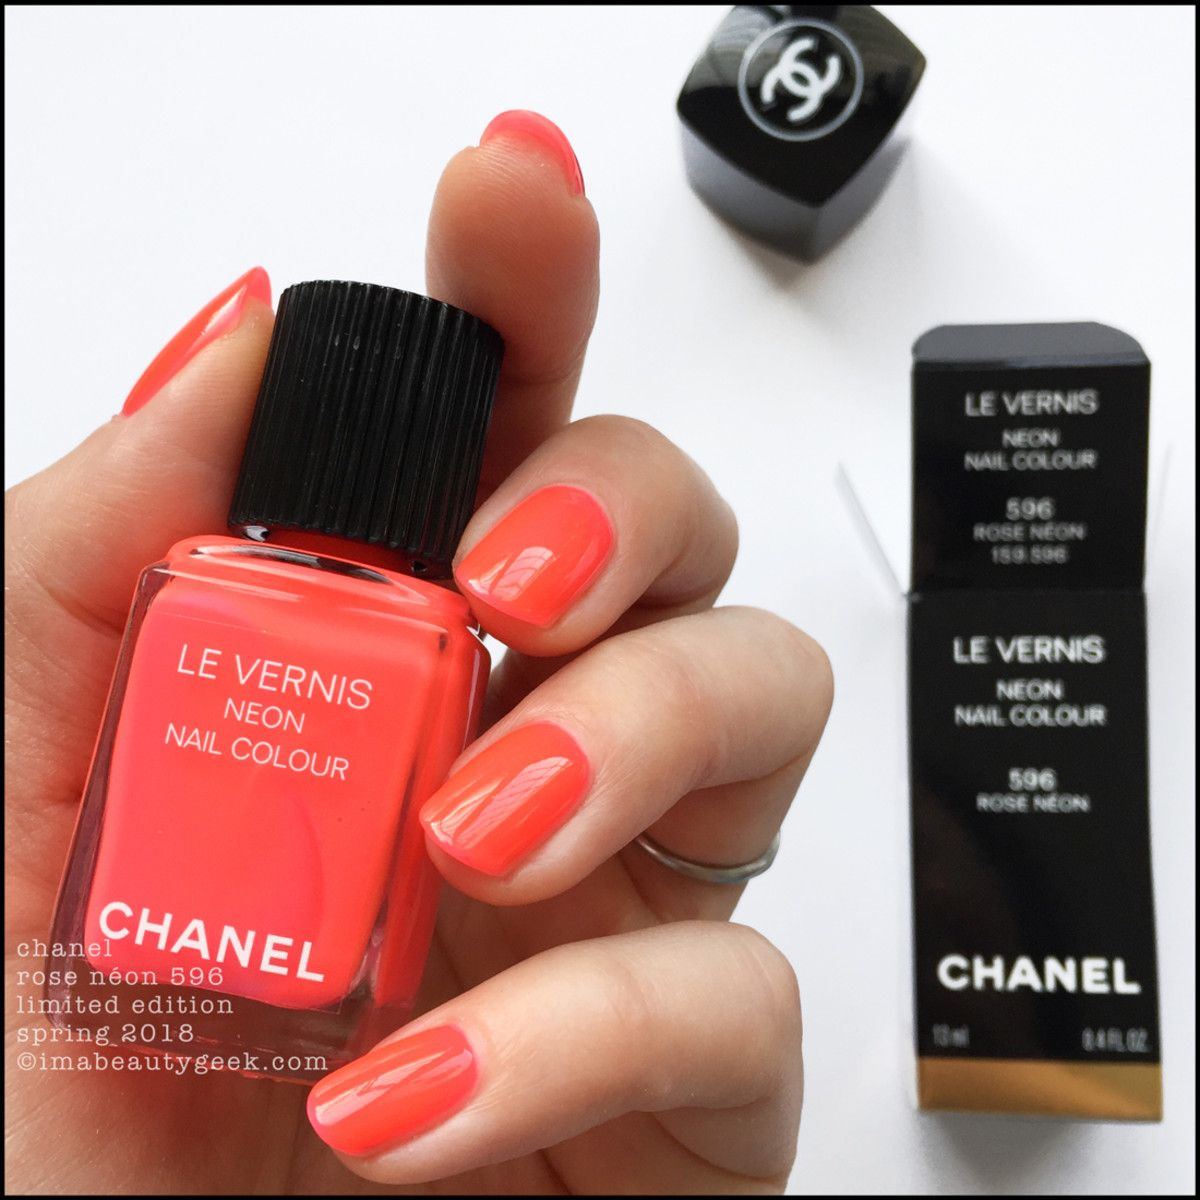 CHANEL LE VERNIS SPRING 2018 SHADES | Nails | Chanel nail polish ...